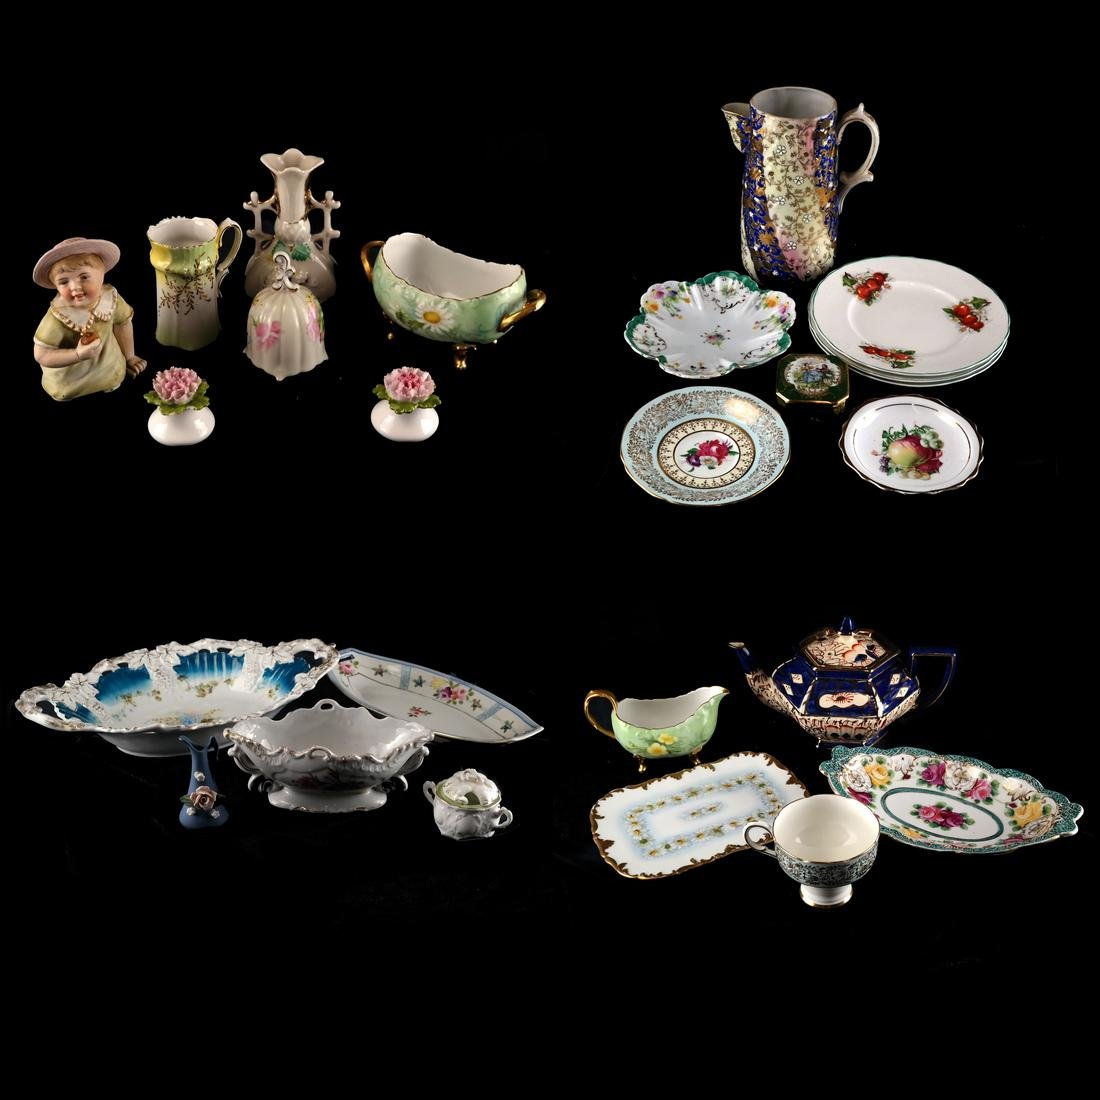 Mixed Lot of Decorated Porcelains and Ceramics